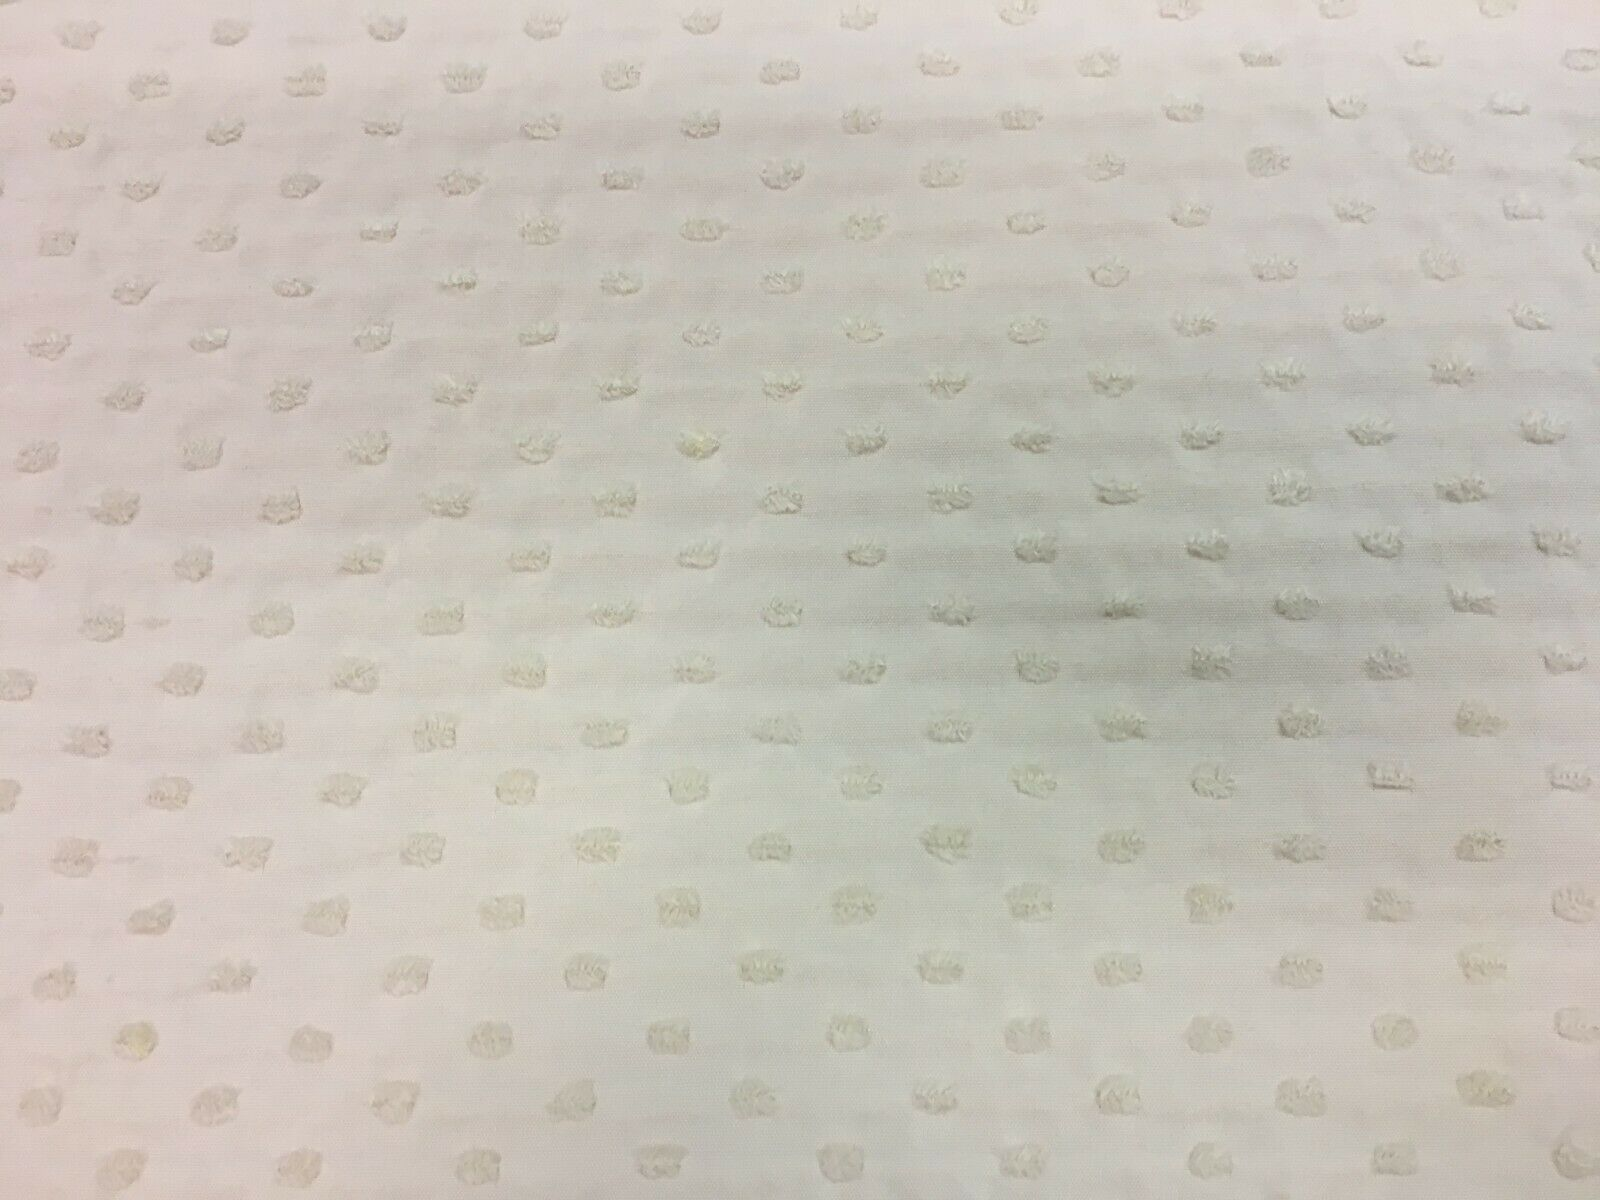 Stroheim and Romann Small Polka Dot White Multi-Purpose Fabric 4 yards DT